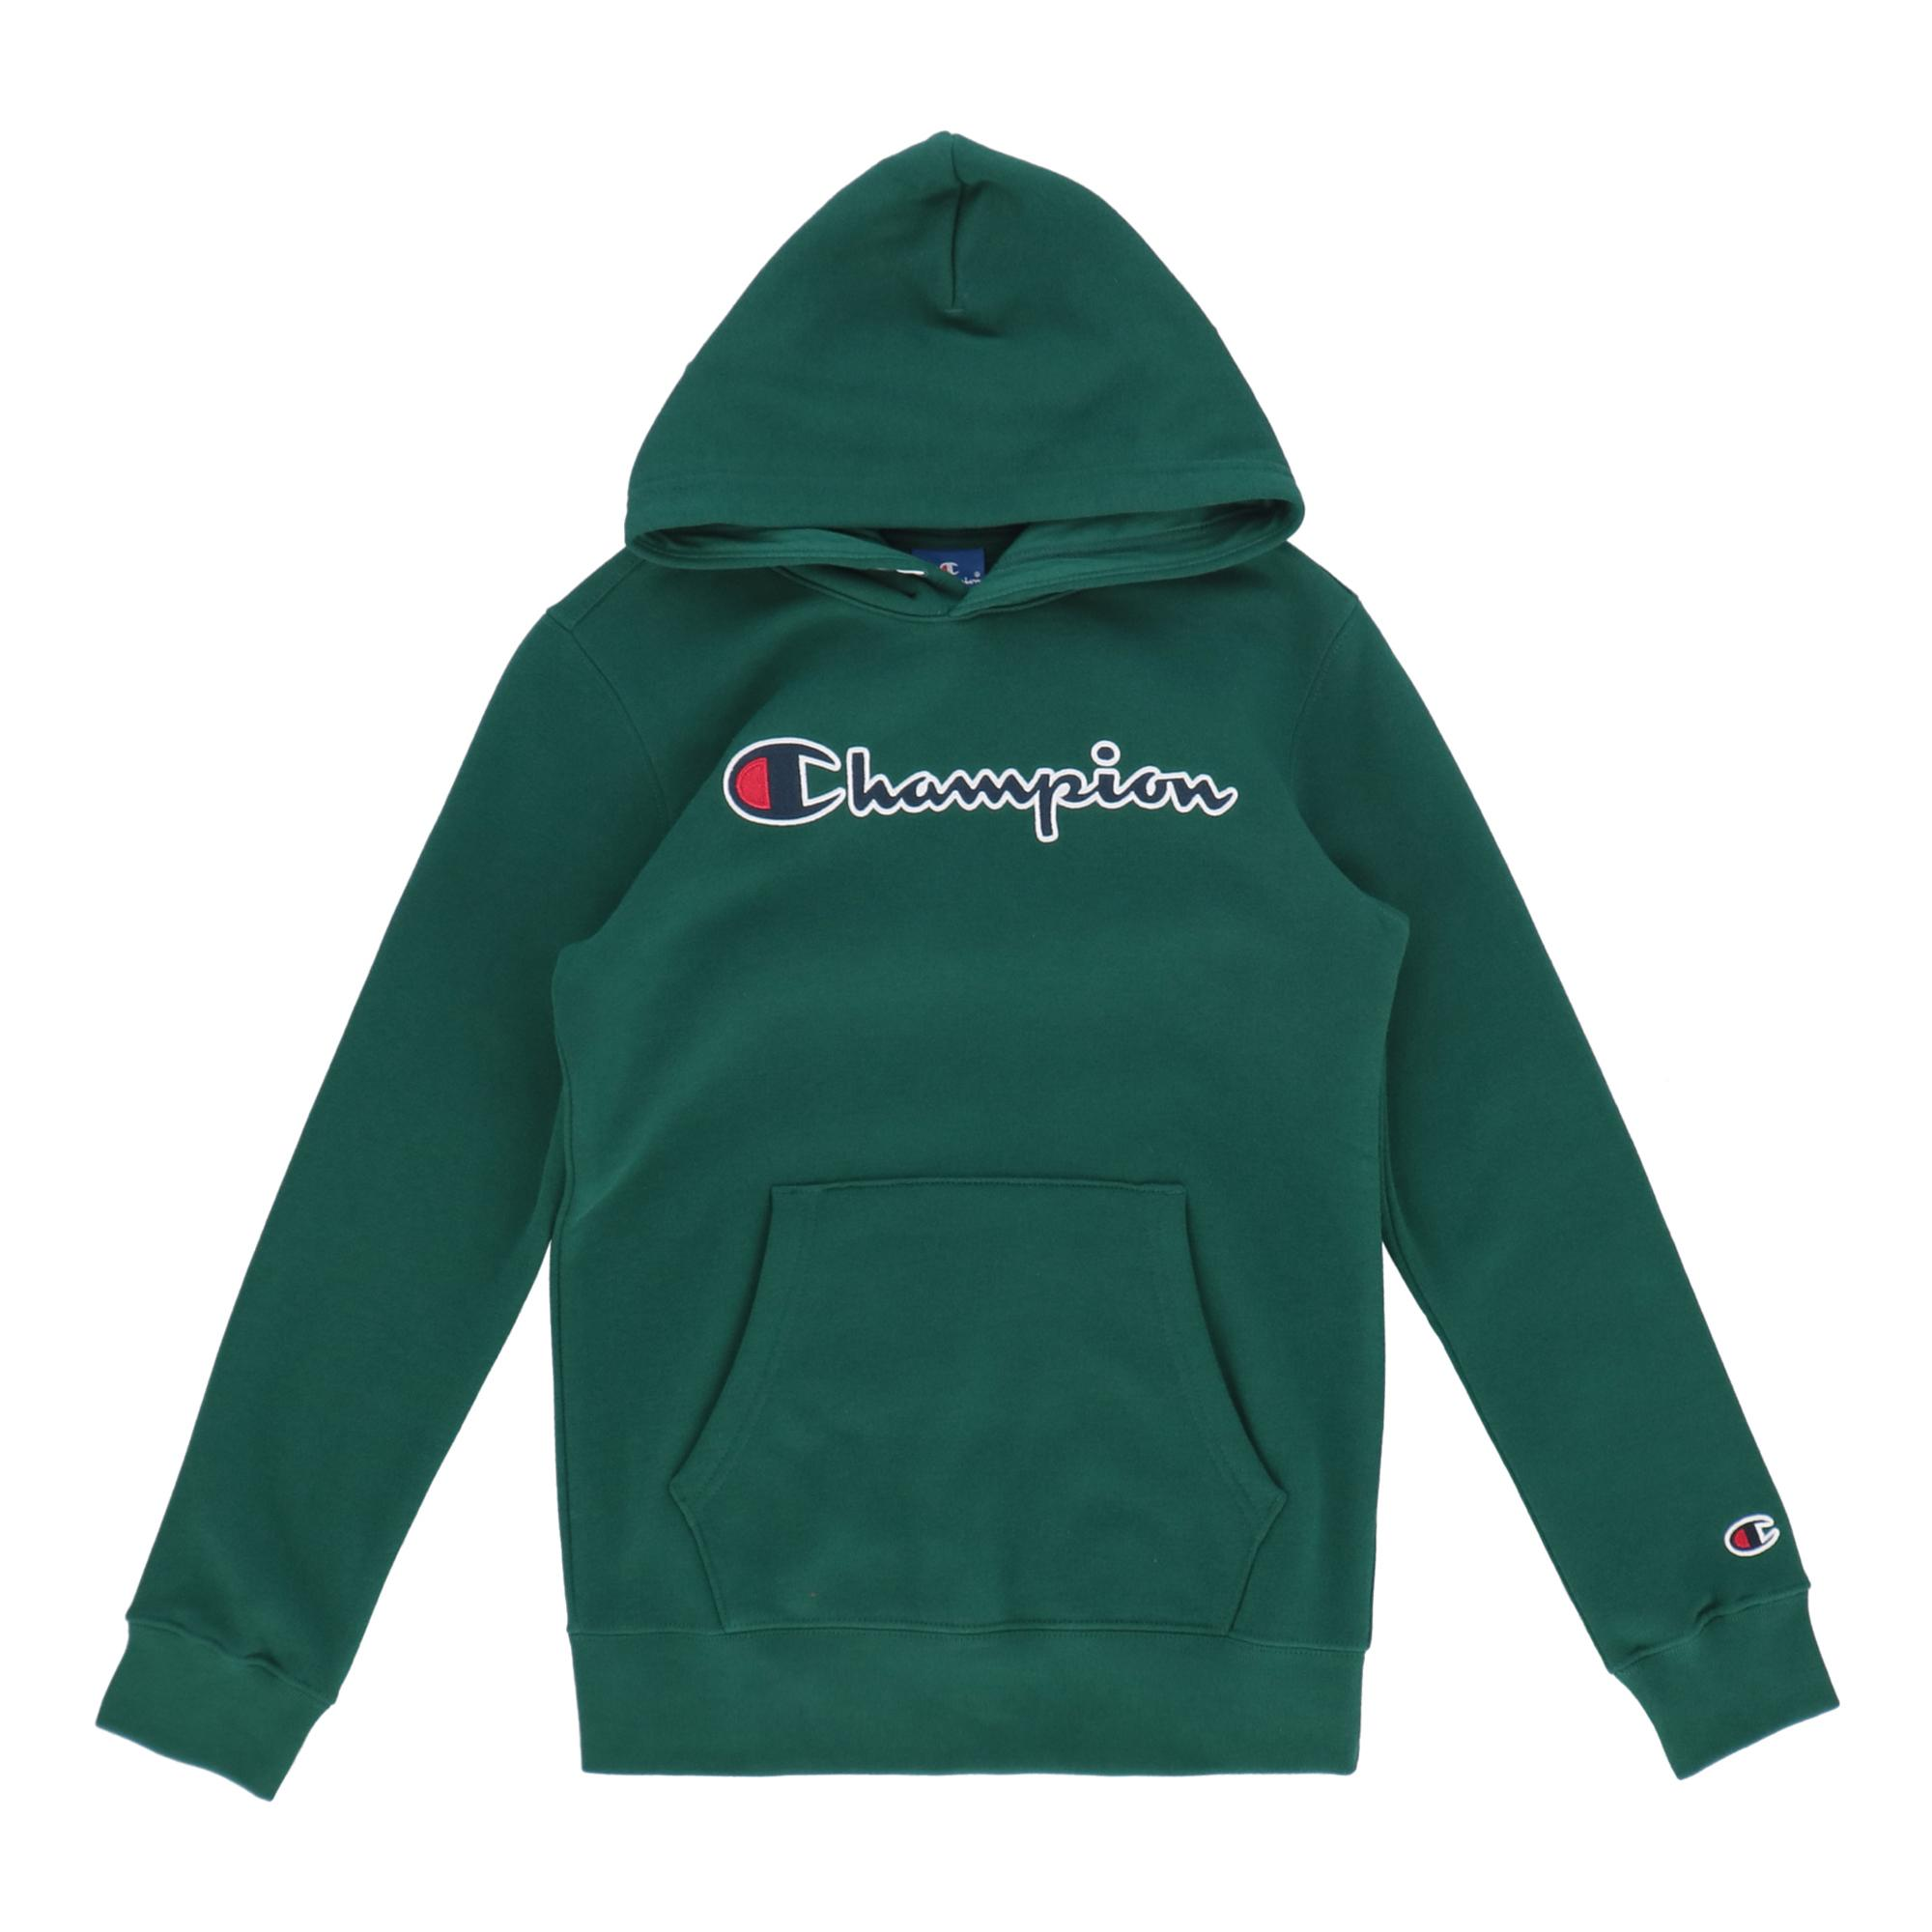 Champion Hooded Sweatshirt Green bottle